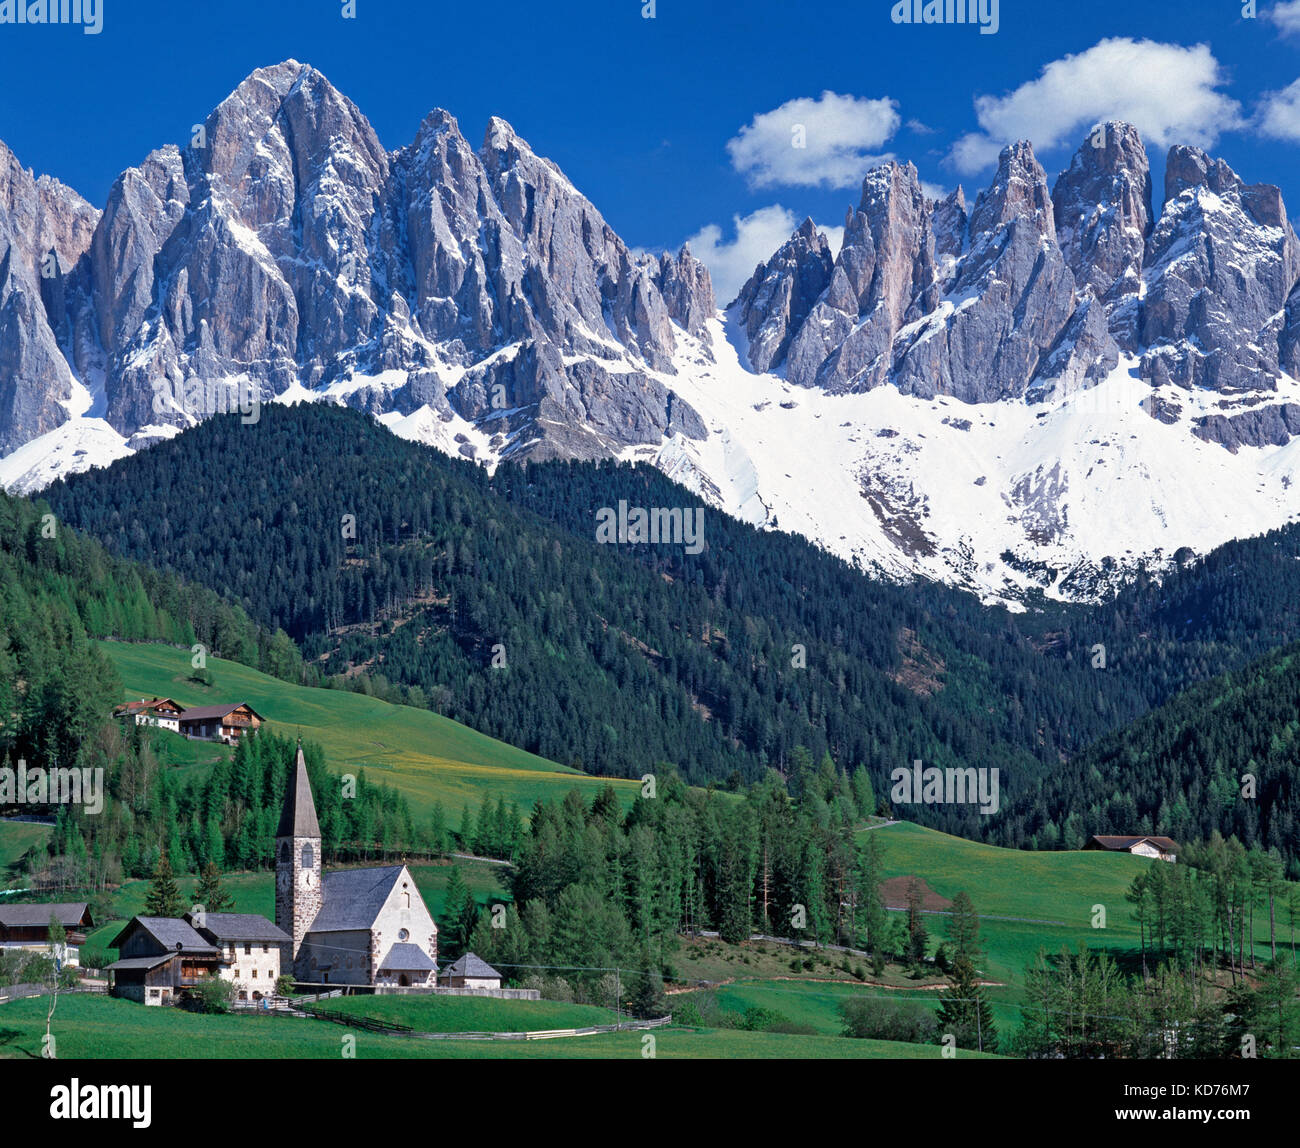 St. Magdalena and the Dolomites, Val di Funes, Alto Adige, Trentino, Italy - Stock Image